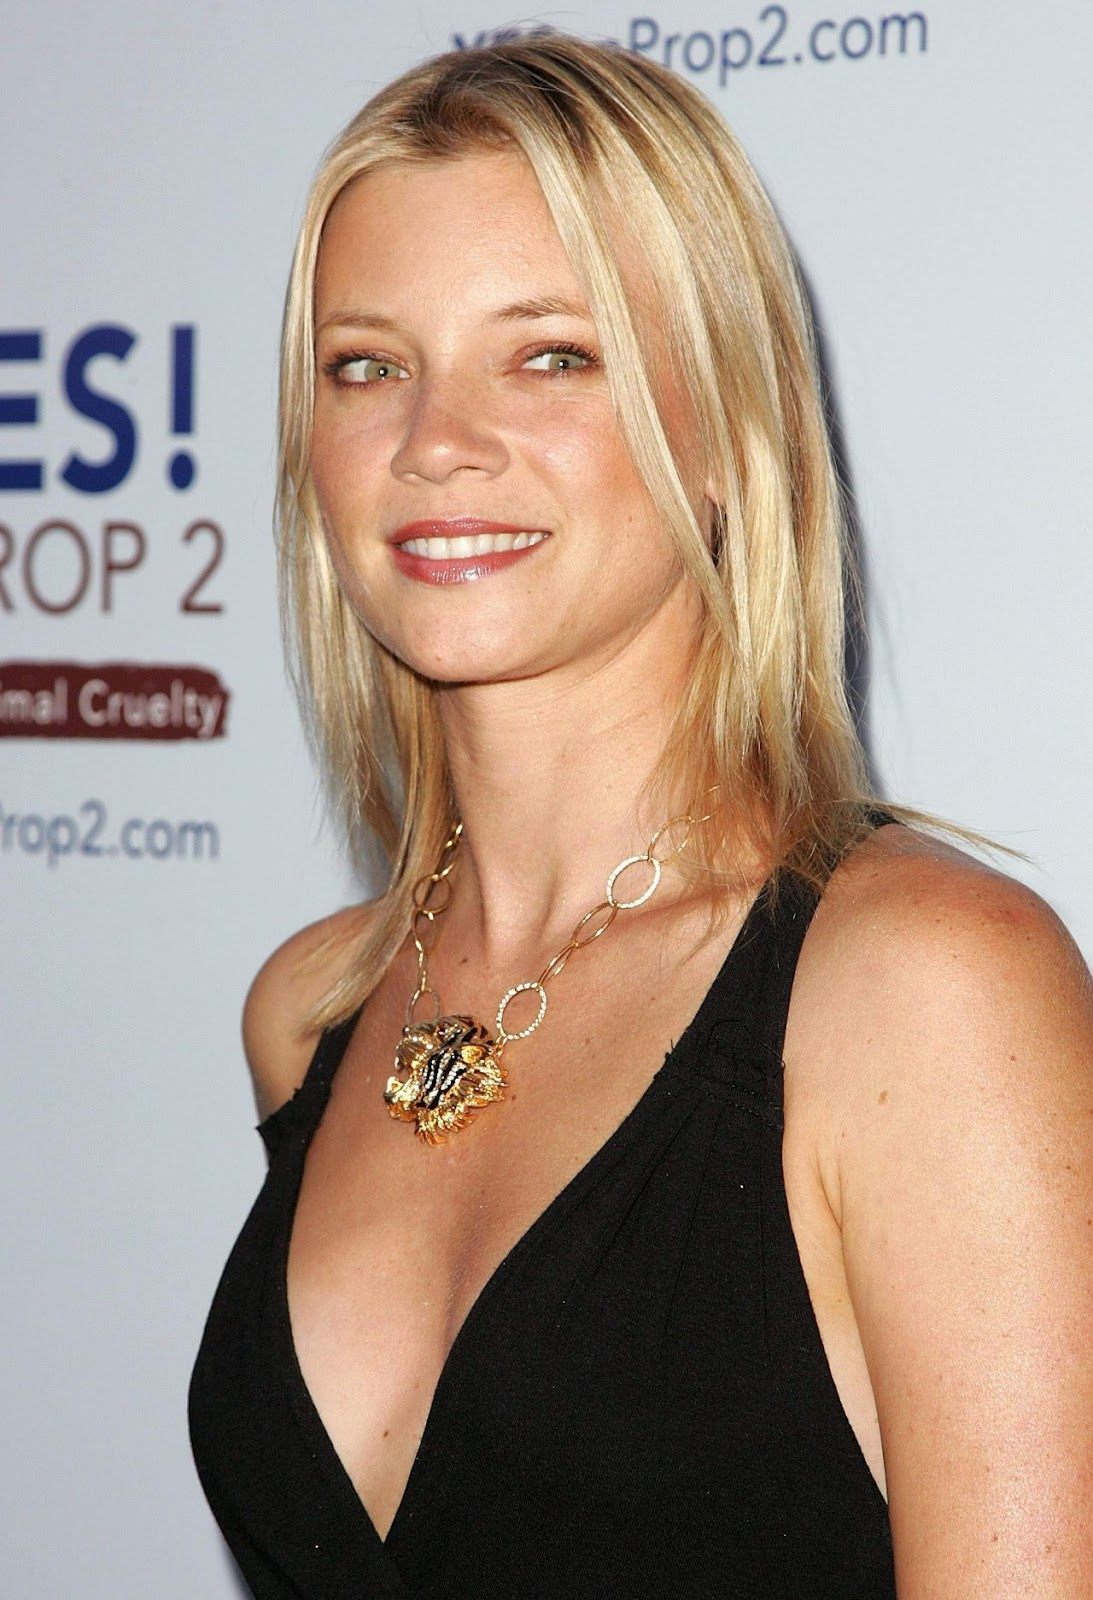 Amy Smart Hot Images amy smart hot pictures - seventh moon images, pictures